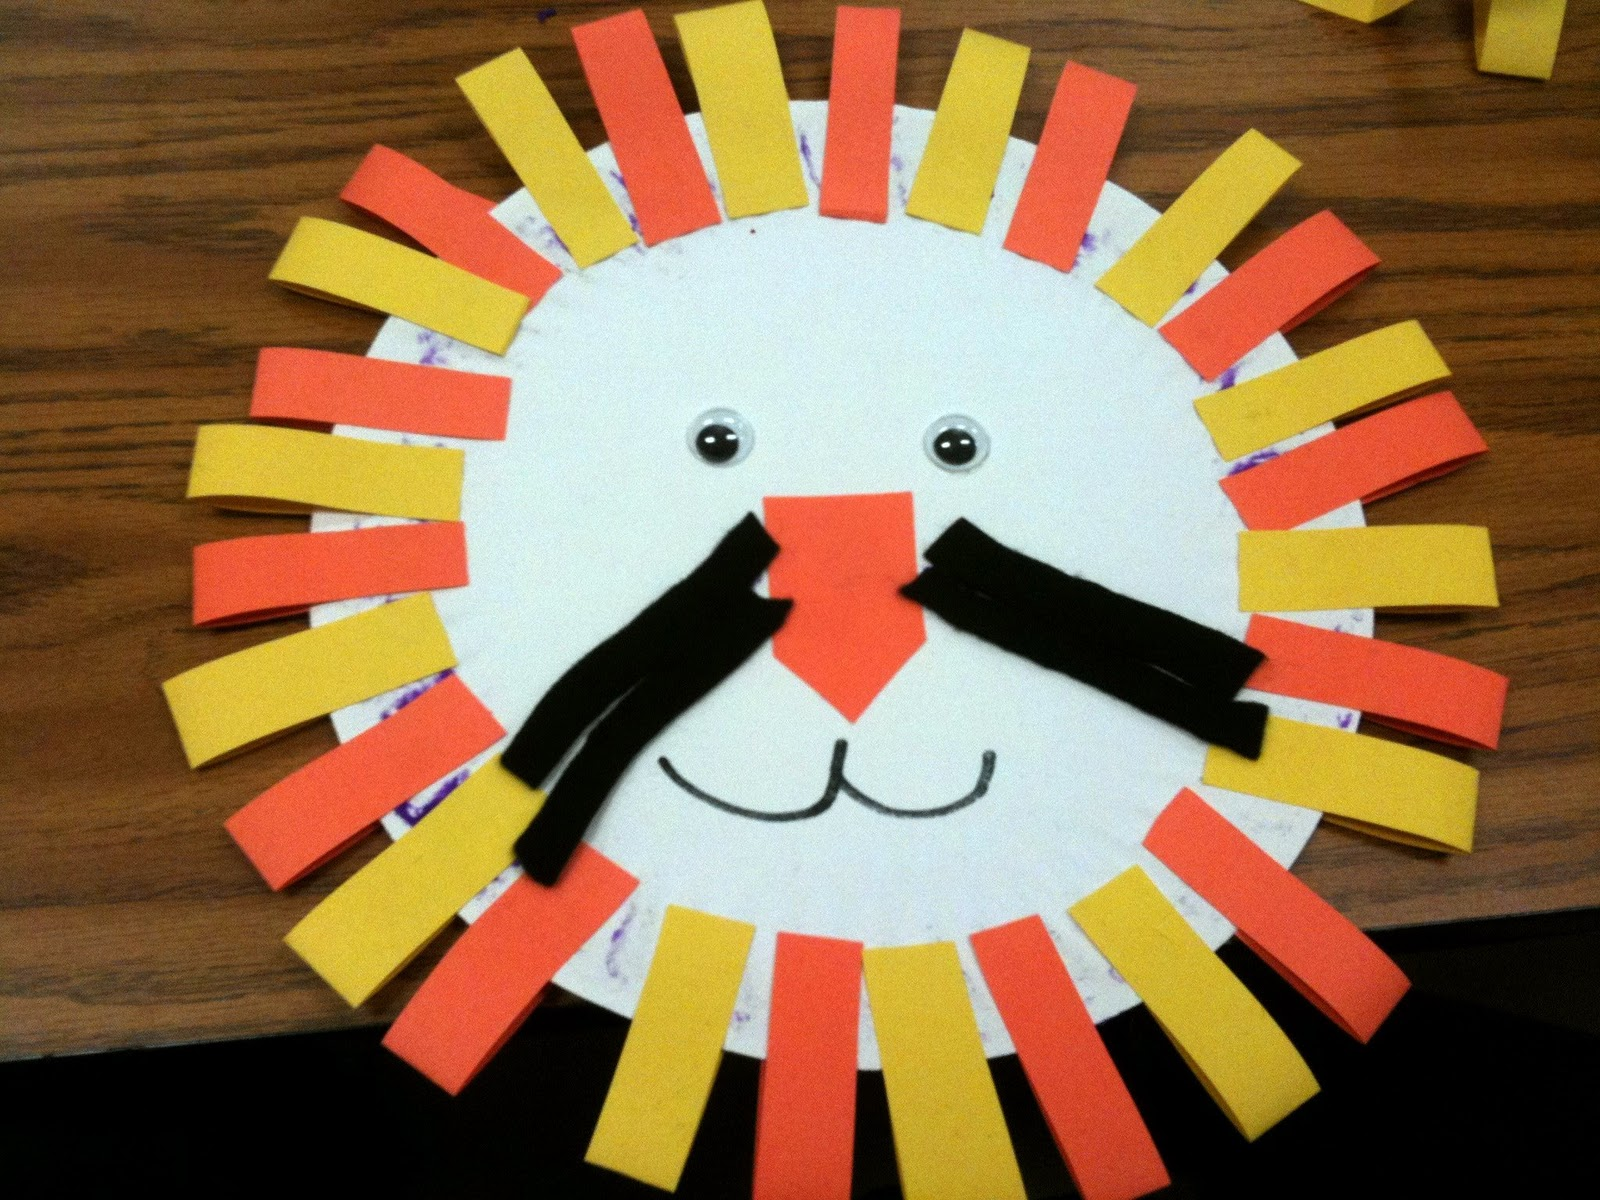 Lion craft with paper plate | Helen\u0027s Art and Crafts & Lion craft with paper plate | Helen\u0027s Art and Crafts | Free Wallpaper